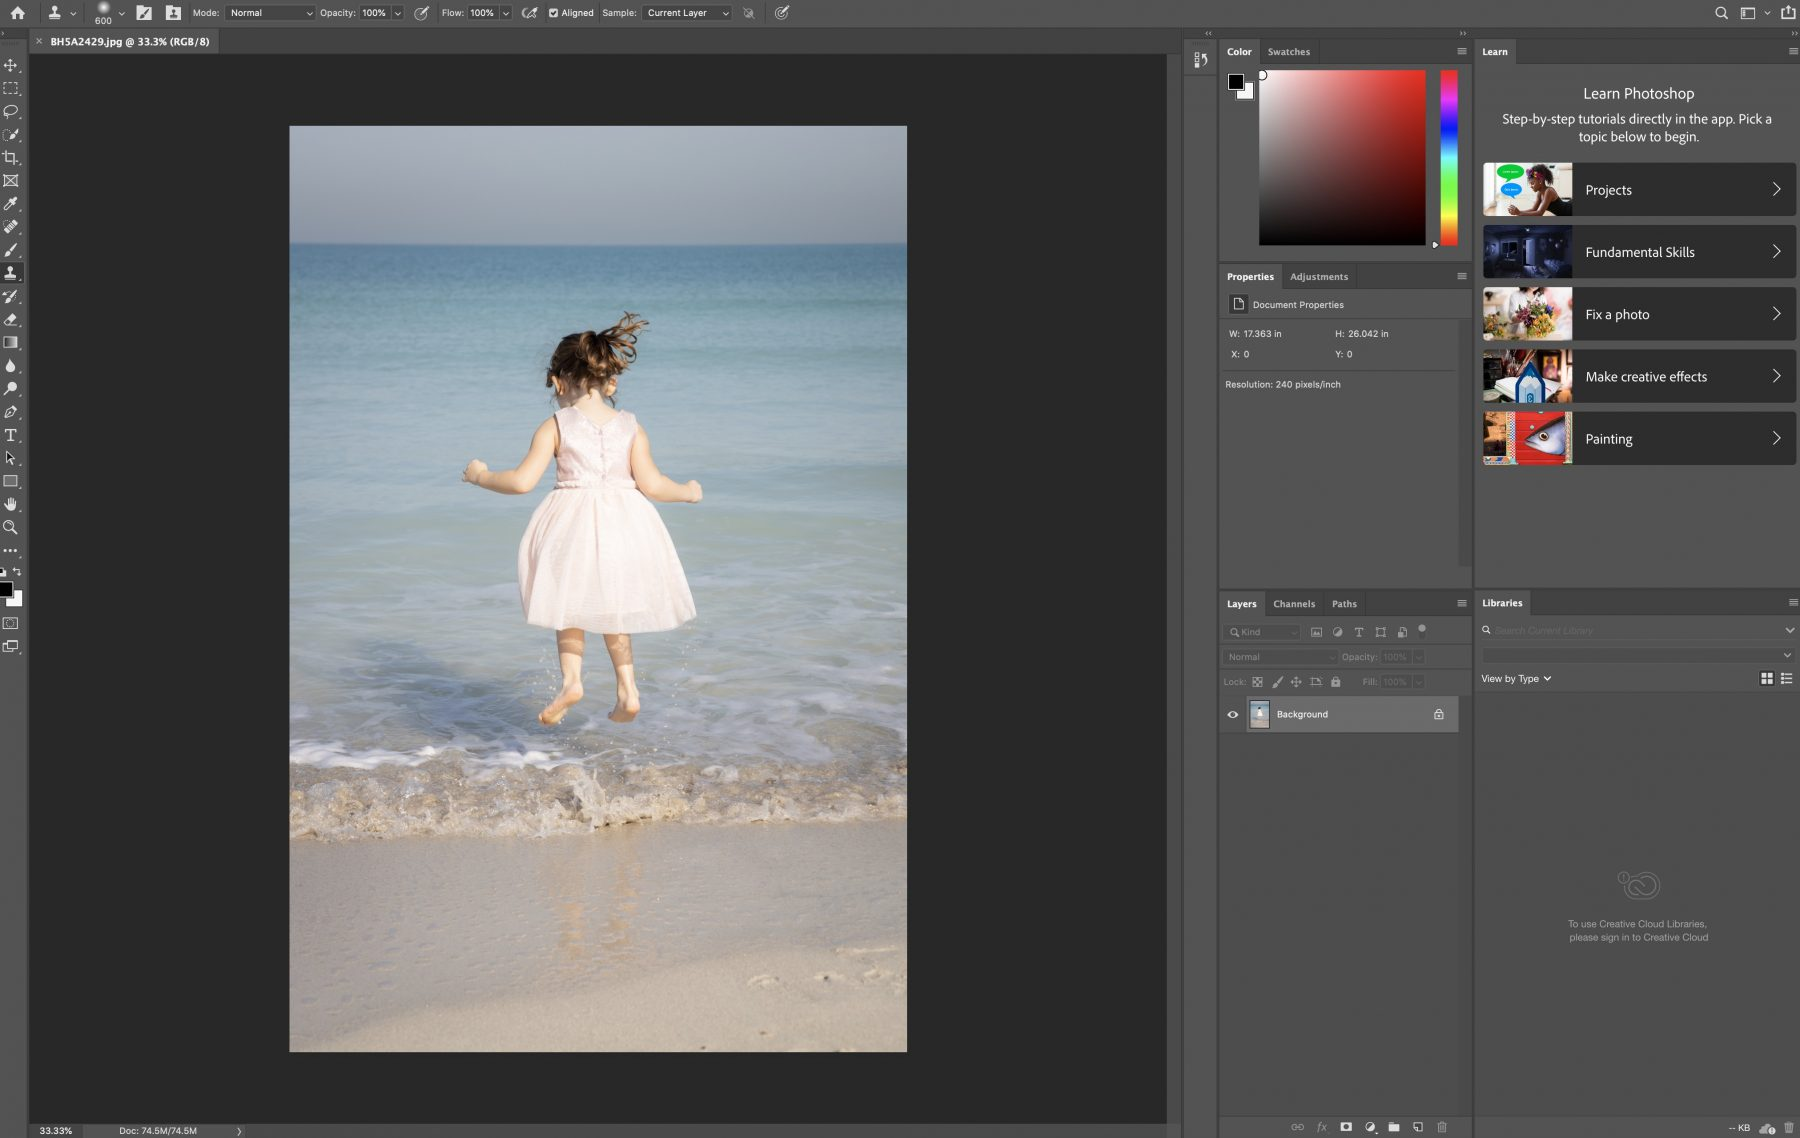 girl jumping in water in photoshop